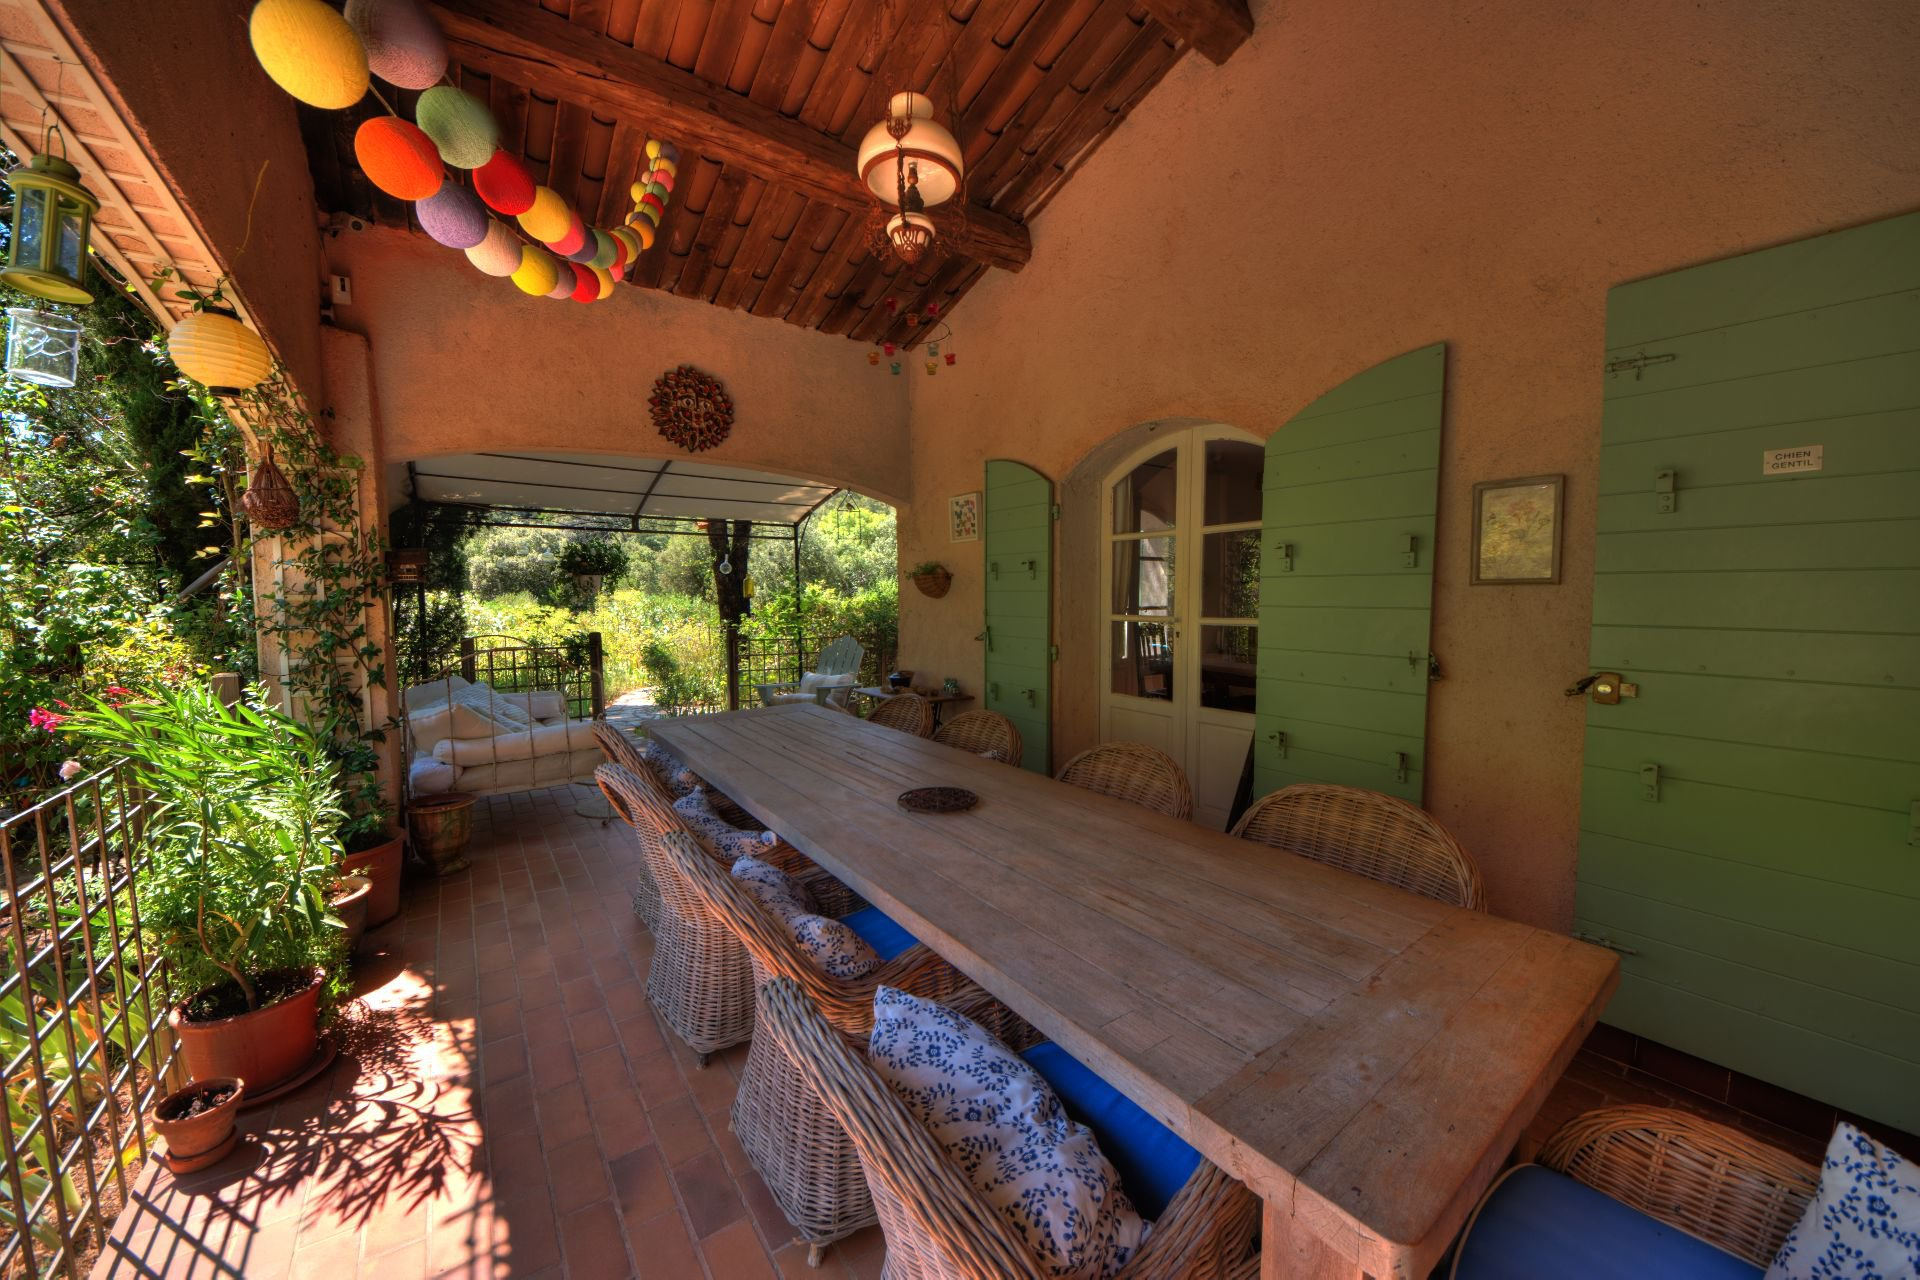 Terrace of the villa in full nature the Thoronet